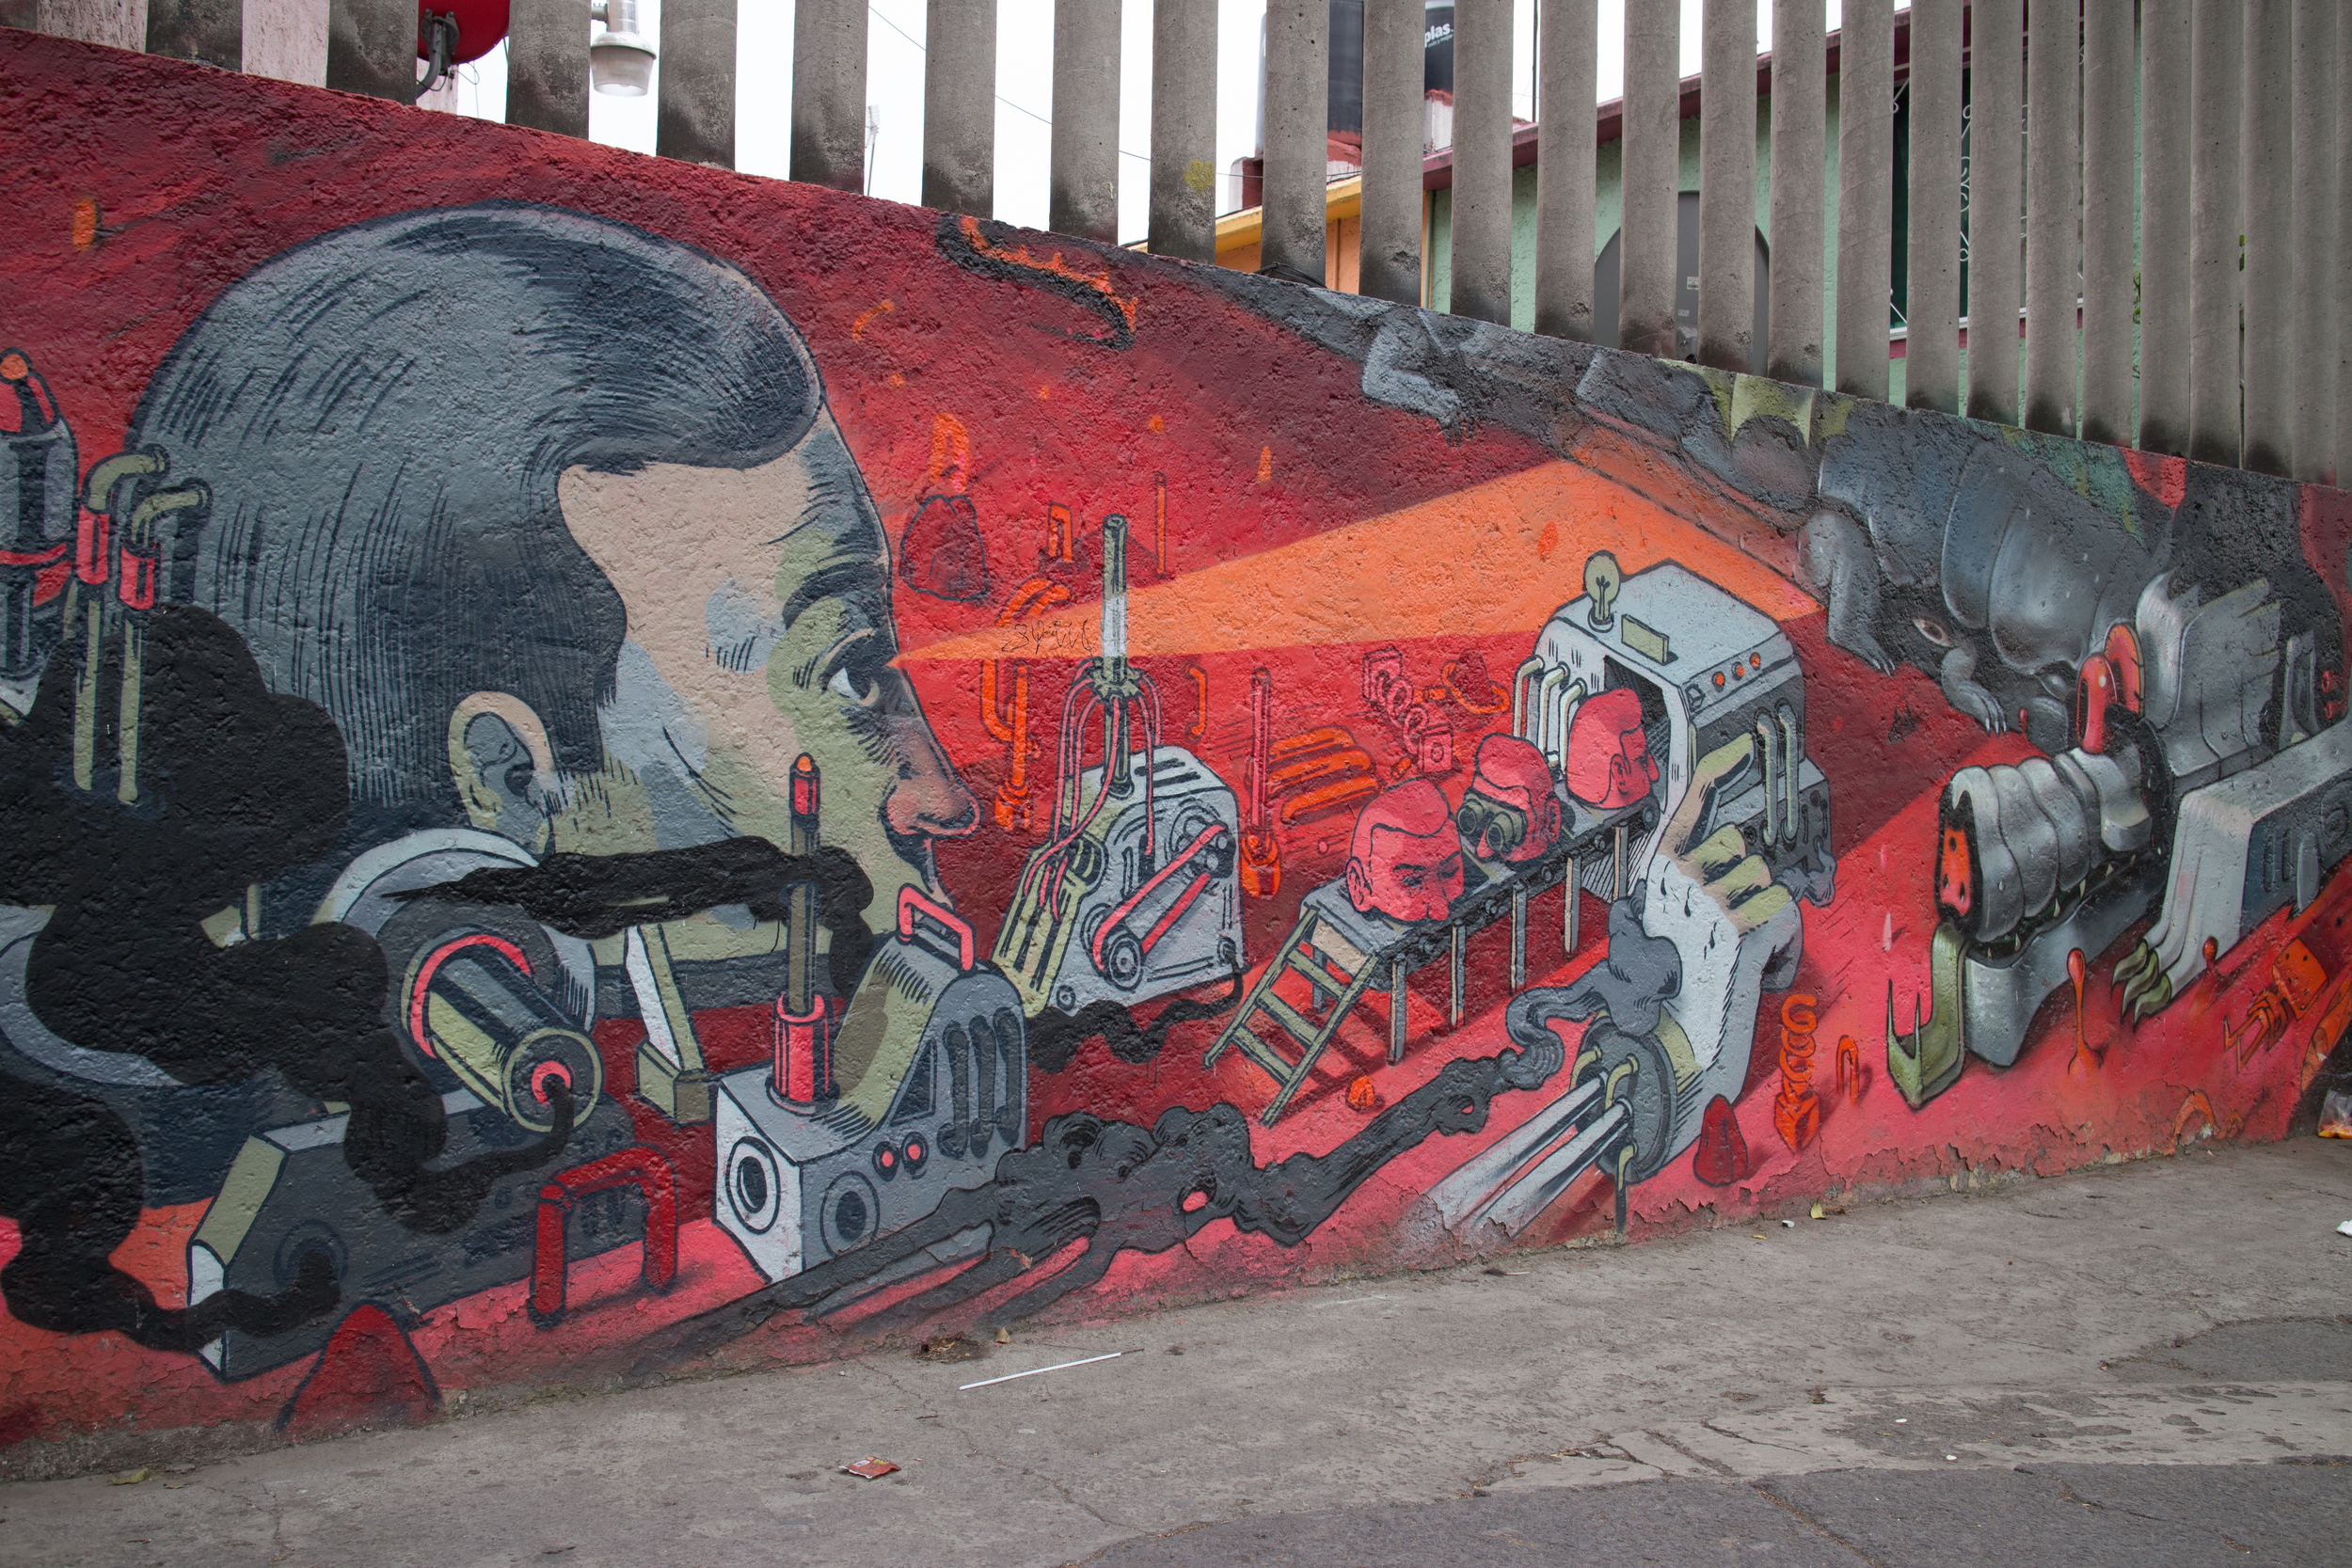 David-Choe-other-Mexico_City_street-art-3.jpg